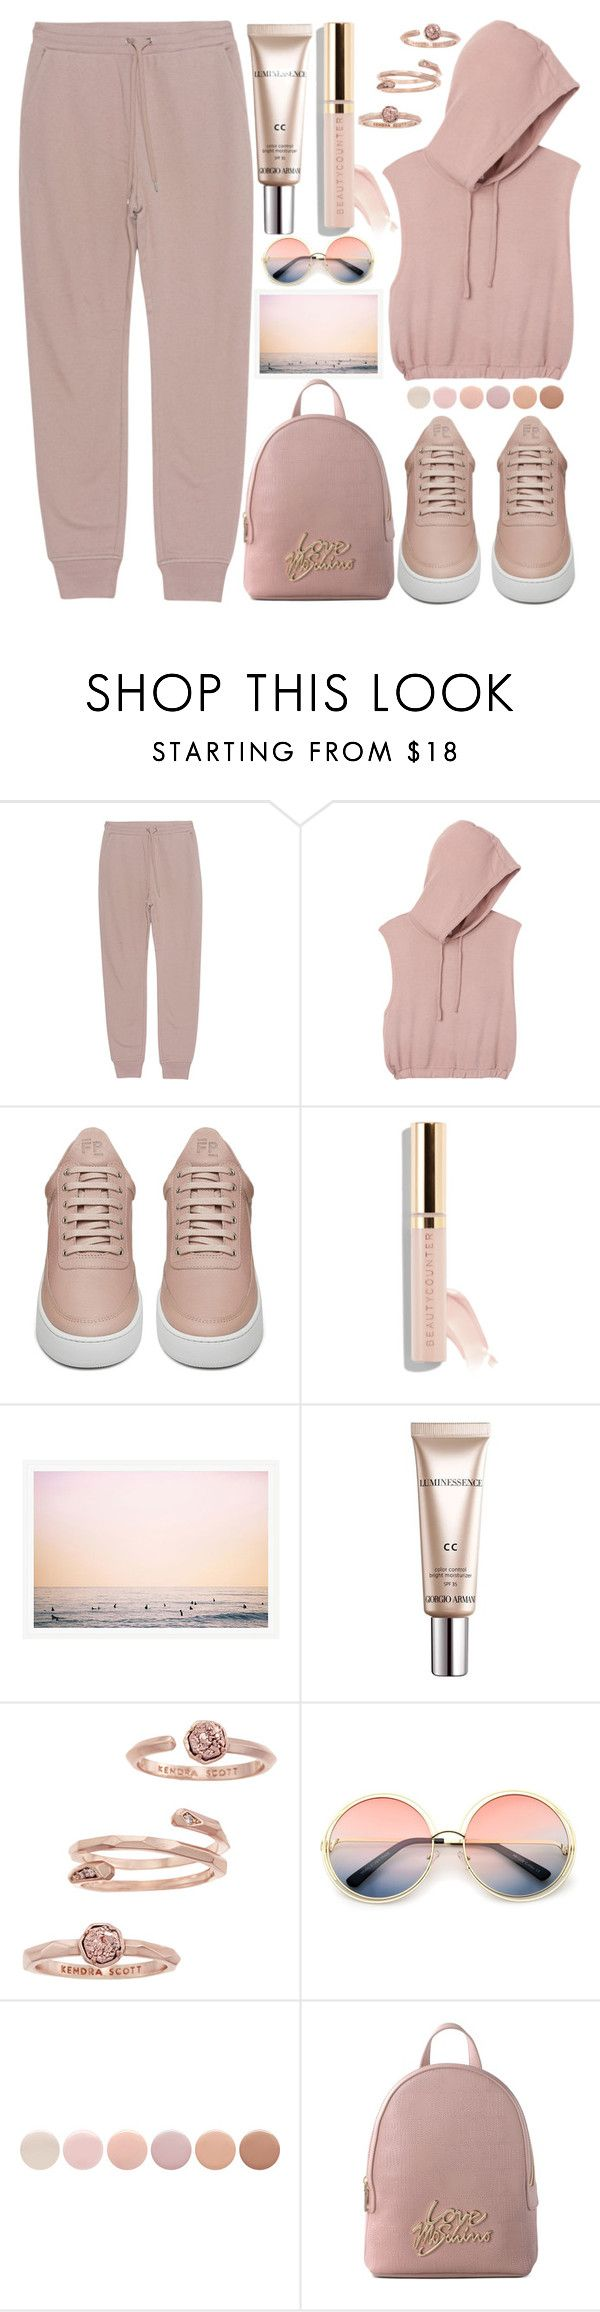 """Fresh Air"" by grozdana-v ❤ liked on Polyvore featuring T By Alexander Wang, RVCA, Filling Pieces, Beautycounter, CC, Kendra Scott, ZeroUV, Deborah Lippmann and Love Moschino"